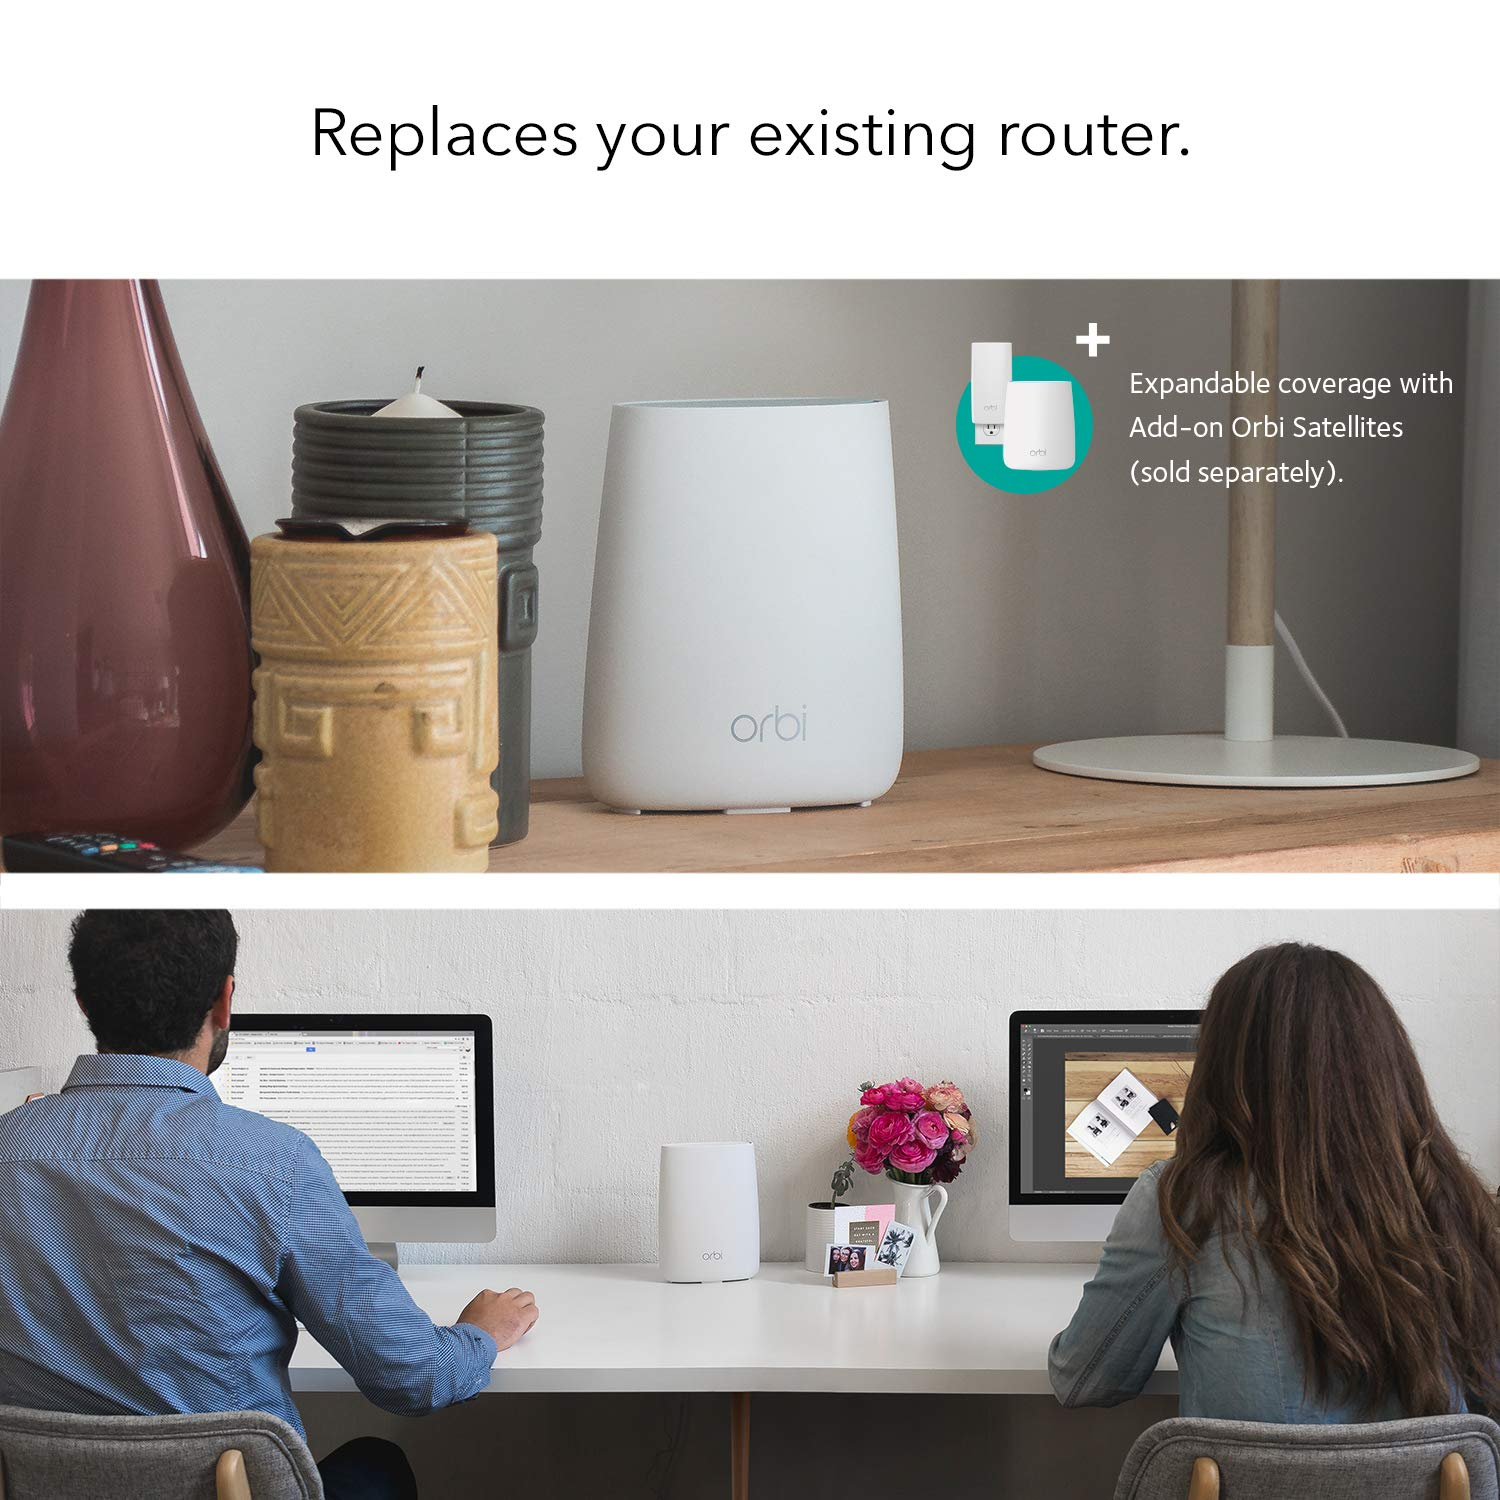 NETGEAR Orbi Whole Home Mesh-Ready WiFi Router - for speeds up to 2.2 Gbps Over 2,000 sq. feet, AC2200 (RBR20) by NETGEAR (Image #1)